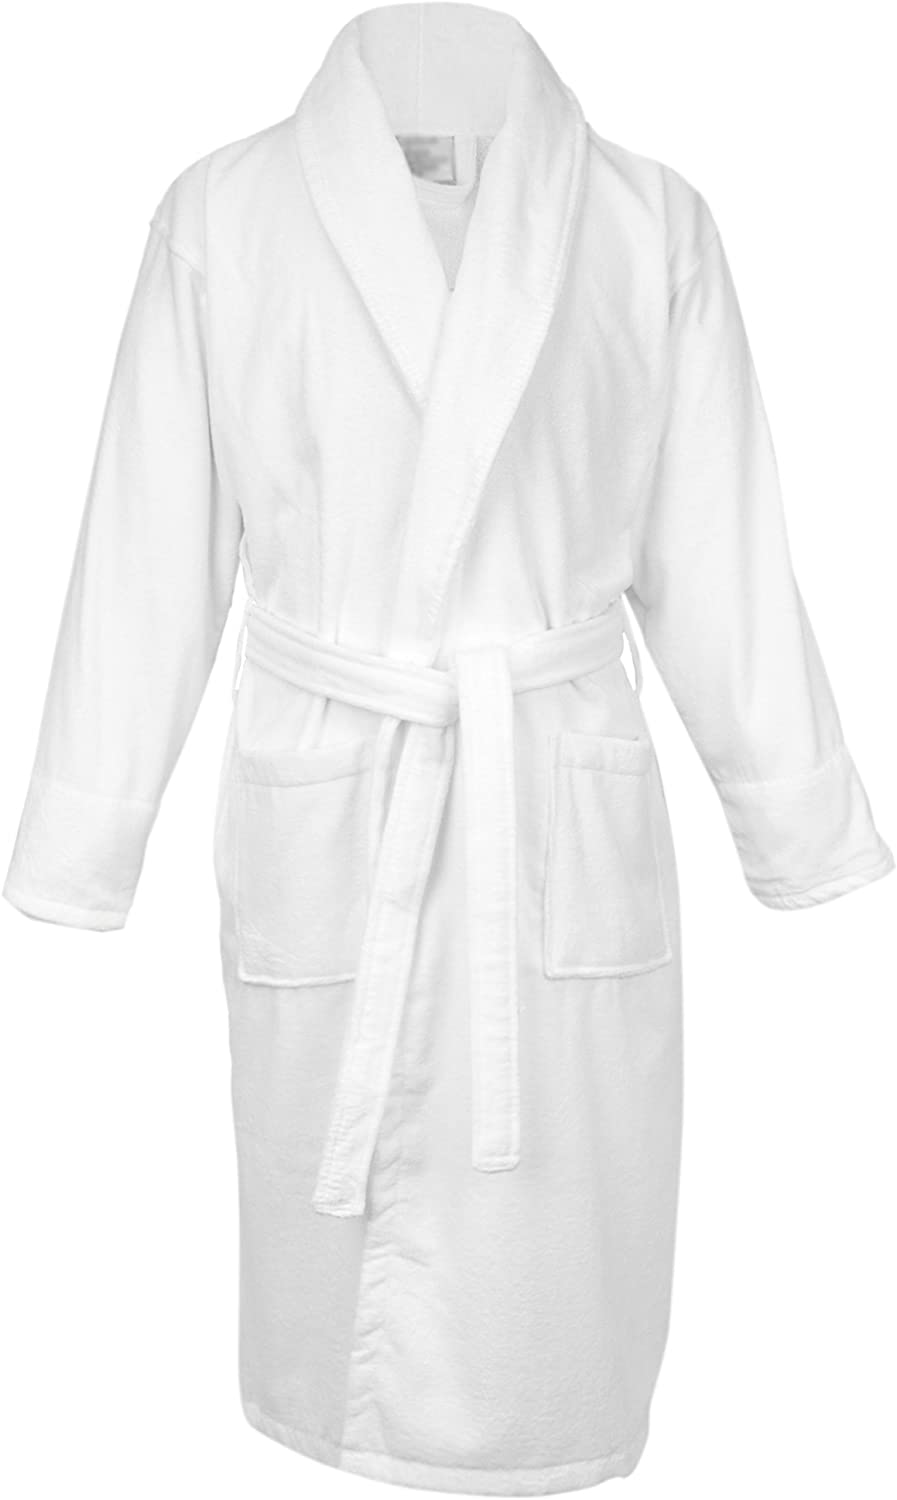 BC BARE COTTON 100% Turkish Women Terry Velour Shawl Robe, Small Medium, White